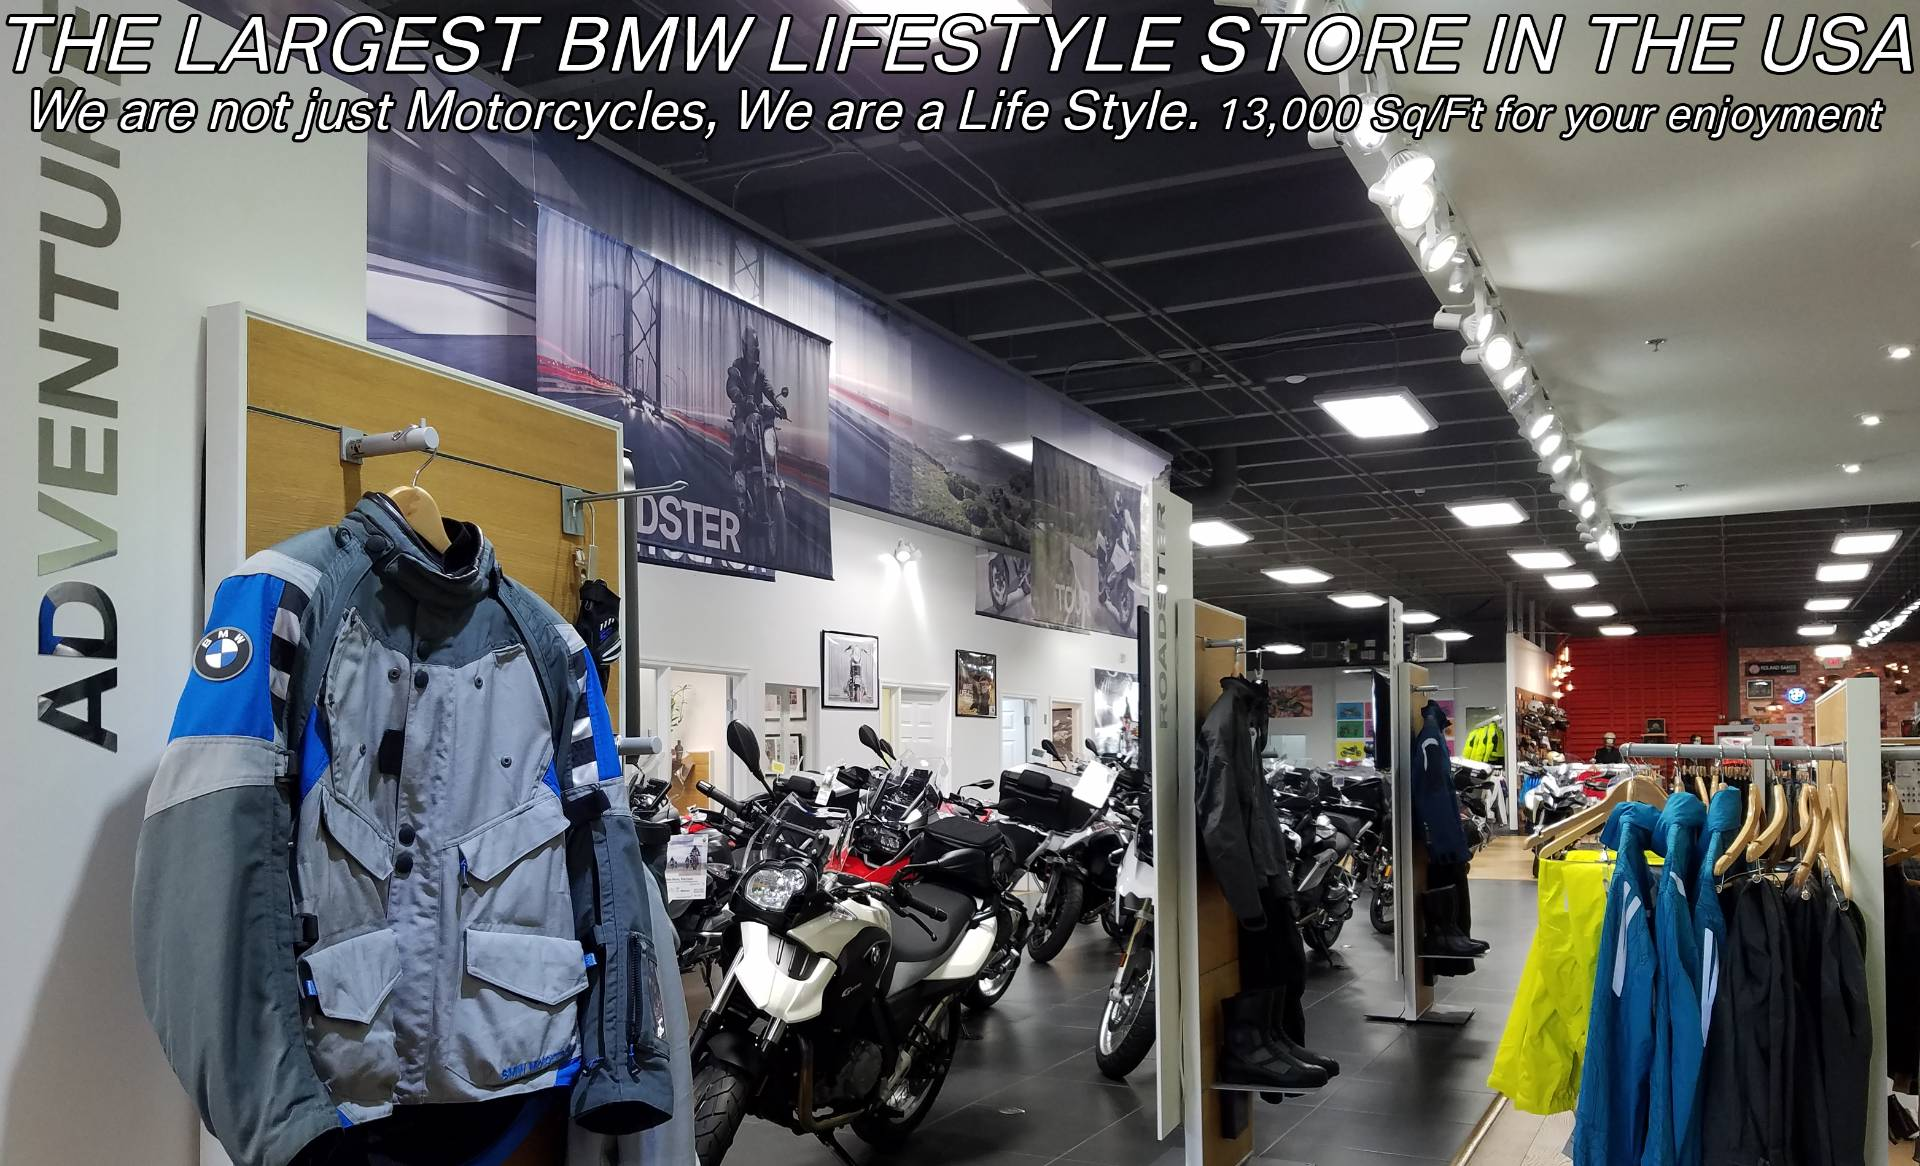 Used 2018 BMW R 1200 GS for sale, BMW R 1200GS for sale, BMW Motorcycle R1200GS, used BMW 1200GS, DUAL, GSA, BMW. BMW Motorcycles of Miami, Motorcycles of Miami, Motorcycles Miami, New Motorcycles, Used Motorcycles, pre-owned. #BMWMotorcyclesOfMiami #MotorcyclesOfMiami. - Photo 62